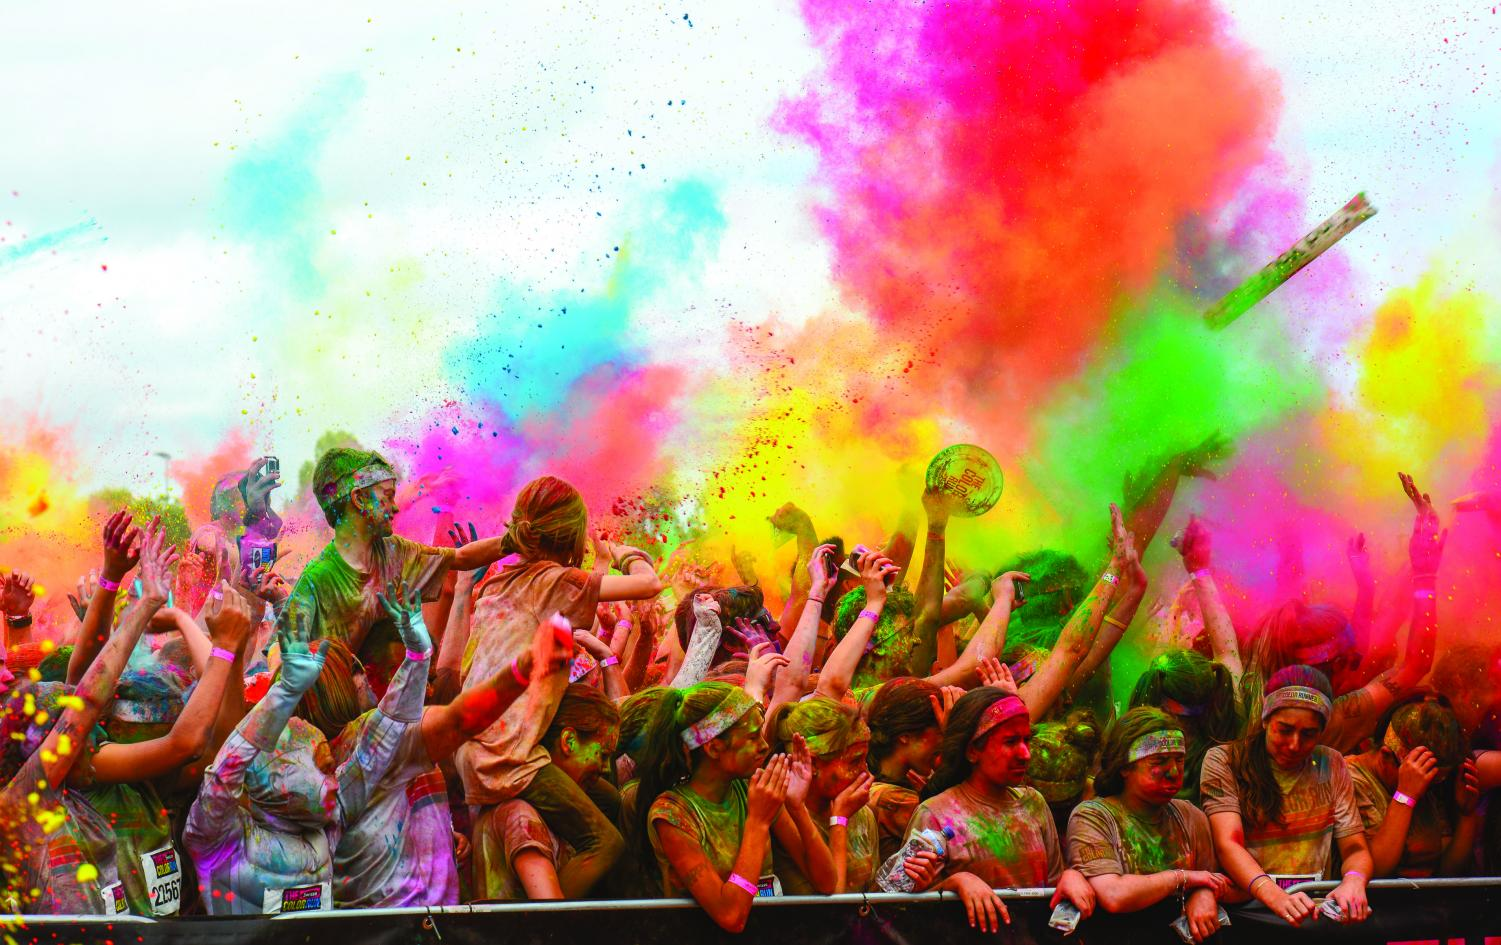 Participants in a charity color run enjoy flinging colors on themselves and other participants during one of the popular events. (photo used with permission by Wikimedia Commons)